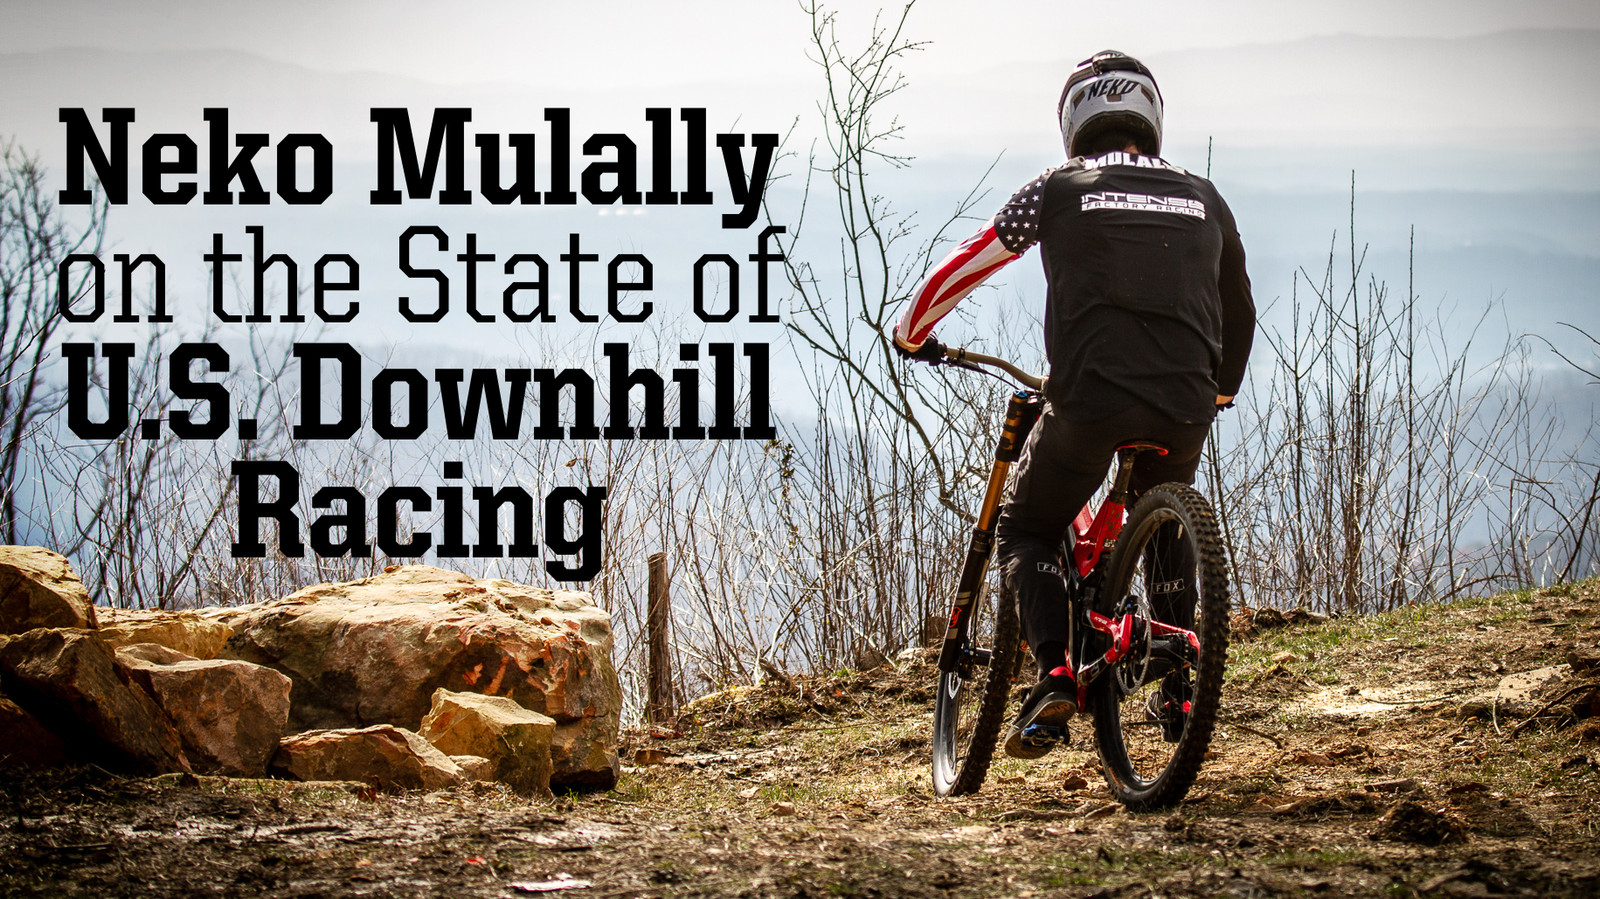 The State of U.S. Downhill Racing According to Neko Mulally